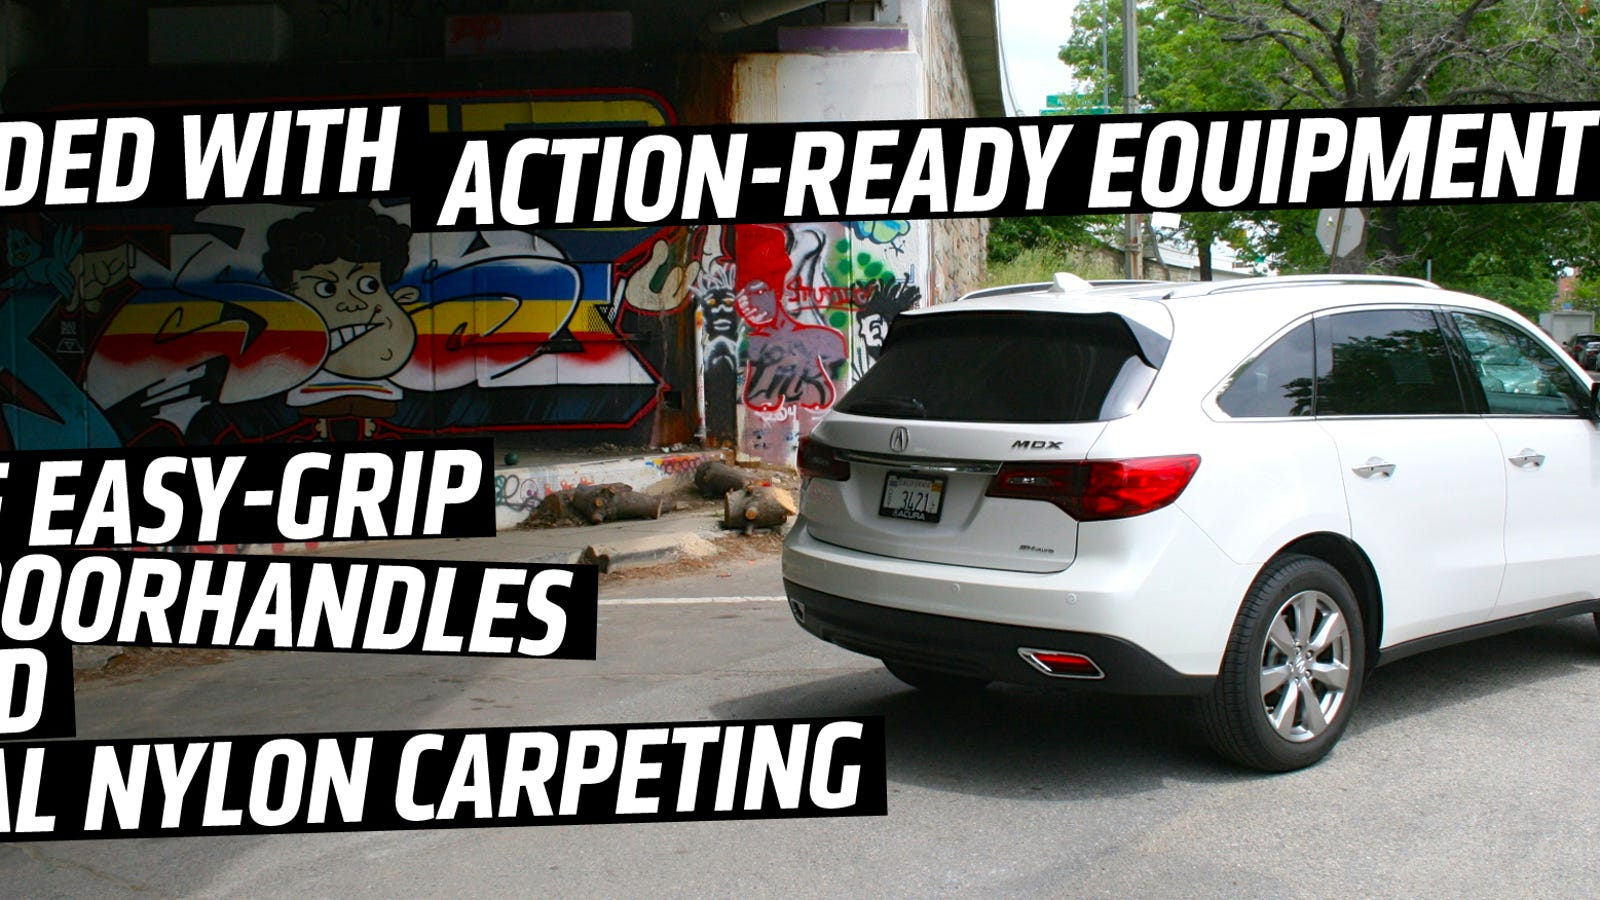 2014 Acura Mdx Sh Awd The Truck Yeah Review Advanced Sports Car Concept